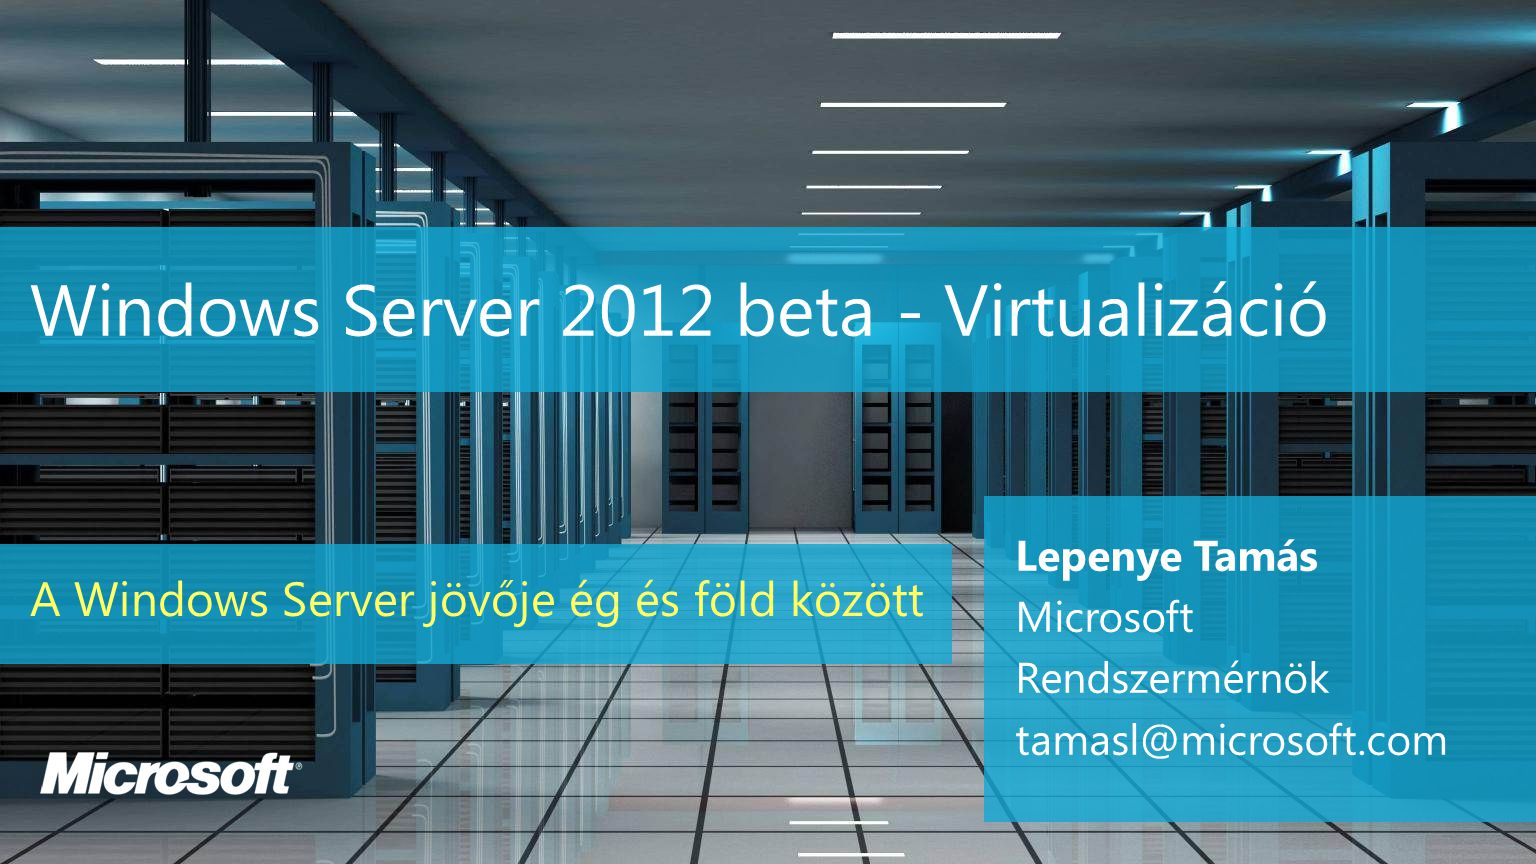 Windows Server 2012 beta - Virtualizáció